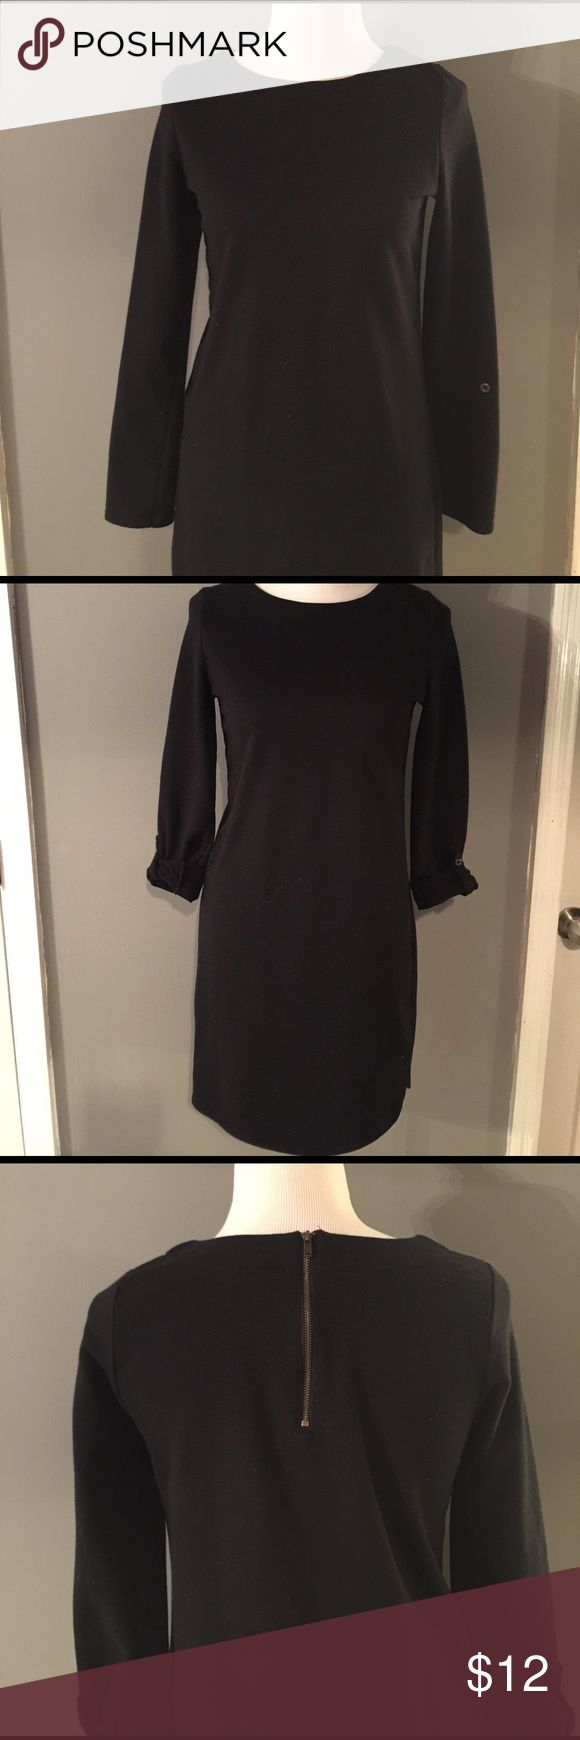 Merona Black Sweatshirt Dress Comfy little black dress. I wear with camel colored flip flops or tan loafers for an easy spring look! Can be layered to wear year round. Comfy and so stylish! Merona Dresses